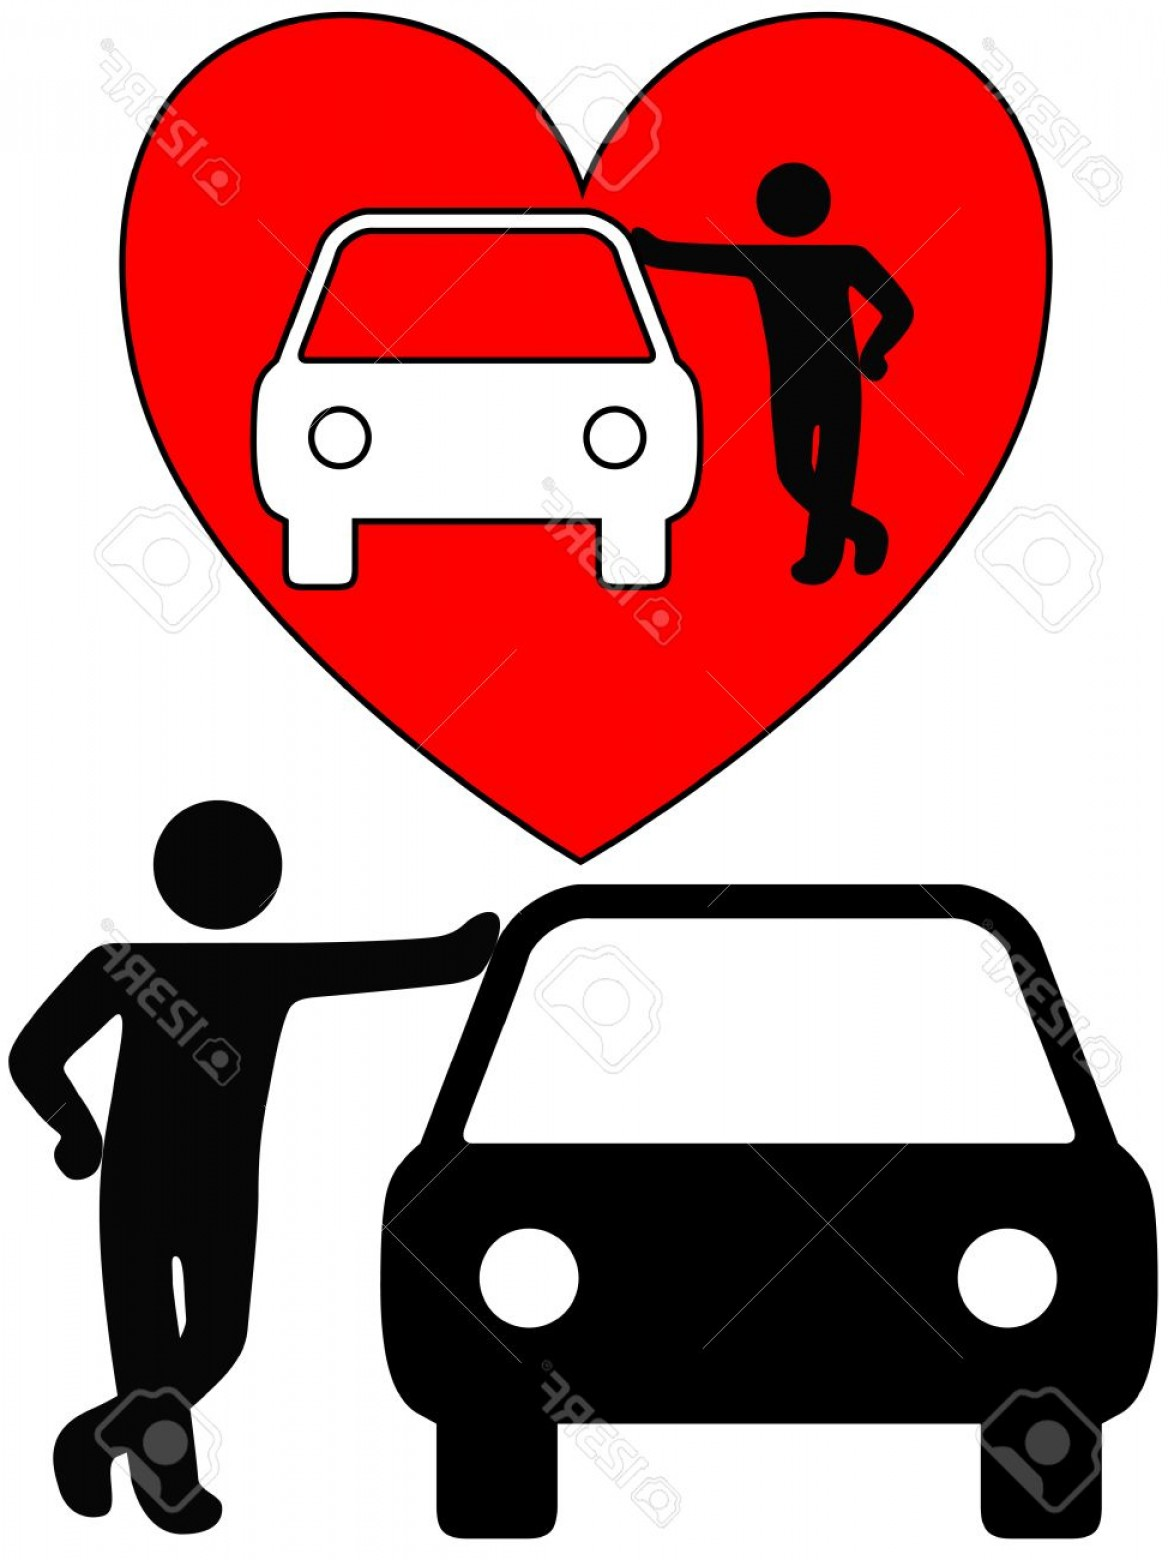 Cars Skyline Vector: Photolove The Car A Symbol Person As A Loving Car Owner Leans On A Car Or A Silhouette Of A Dealer Or Mec